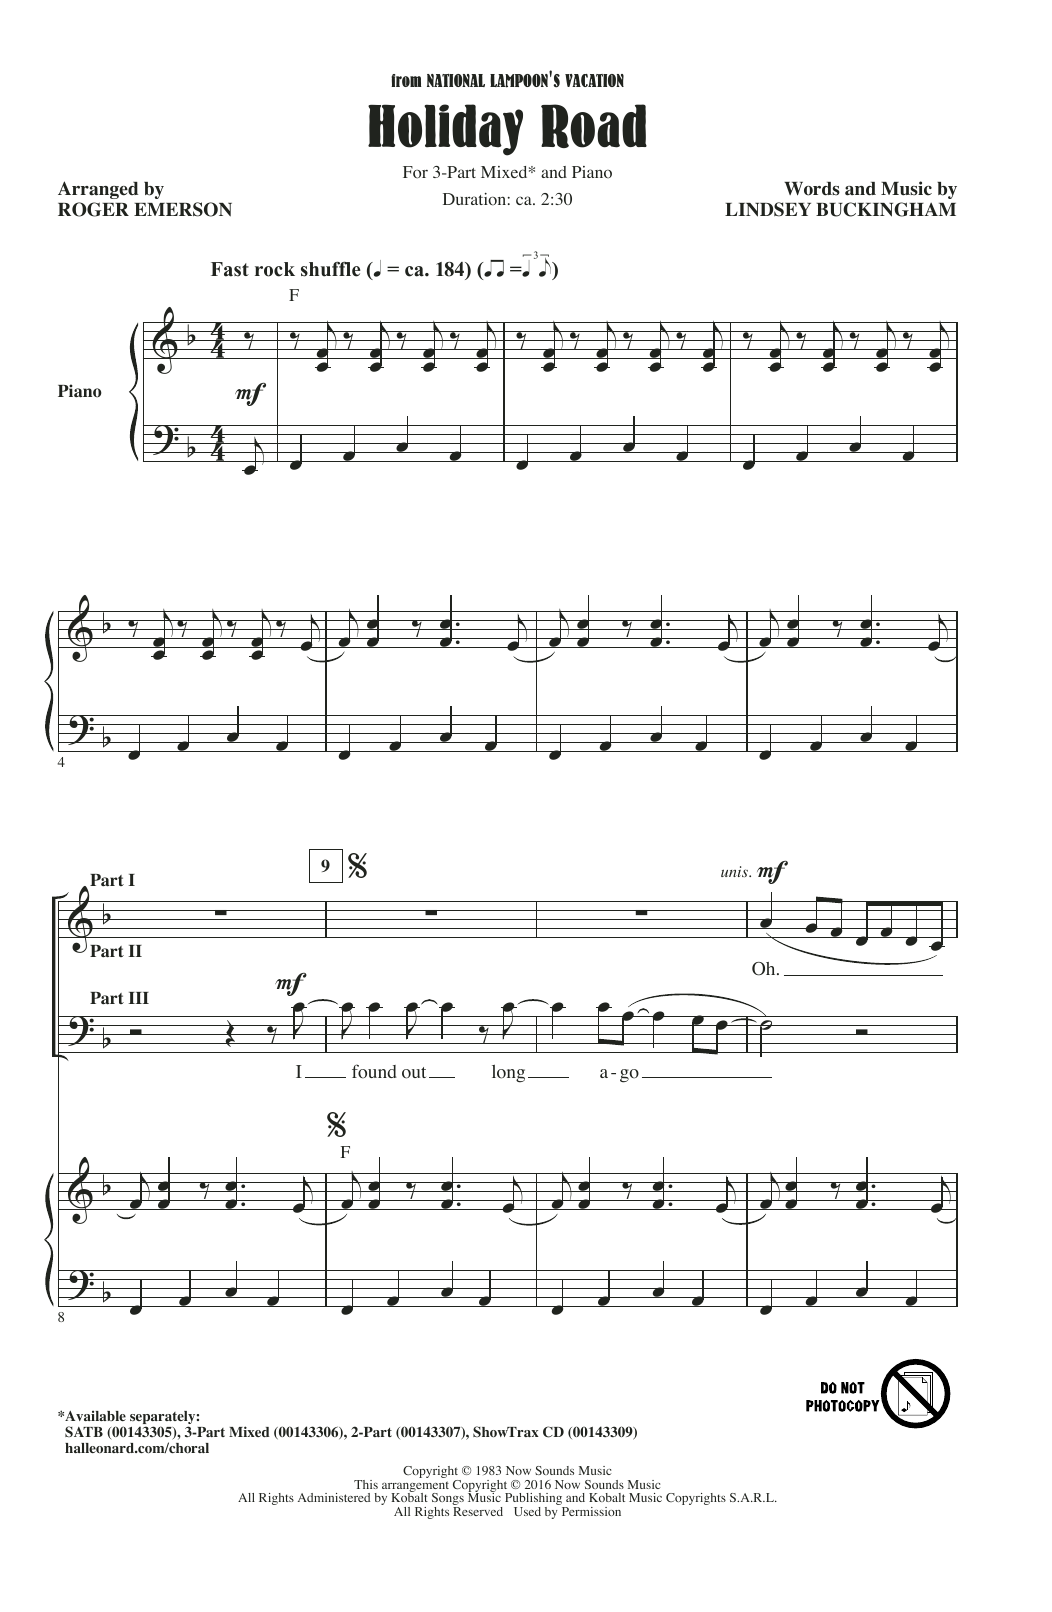 Lindsey Buckingham Holiday Road (arr. Roger Emerson) sheet music notes and chords. Download Printable PDF.